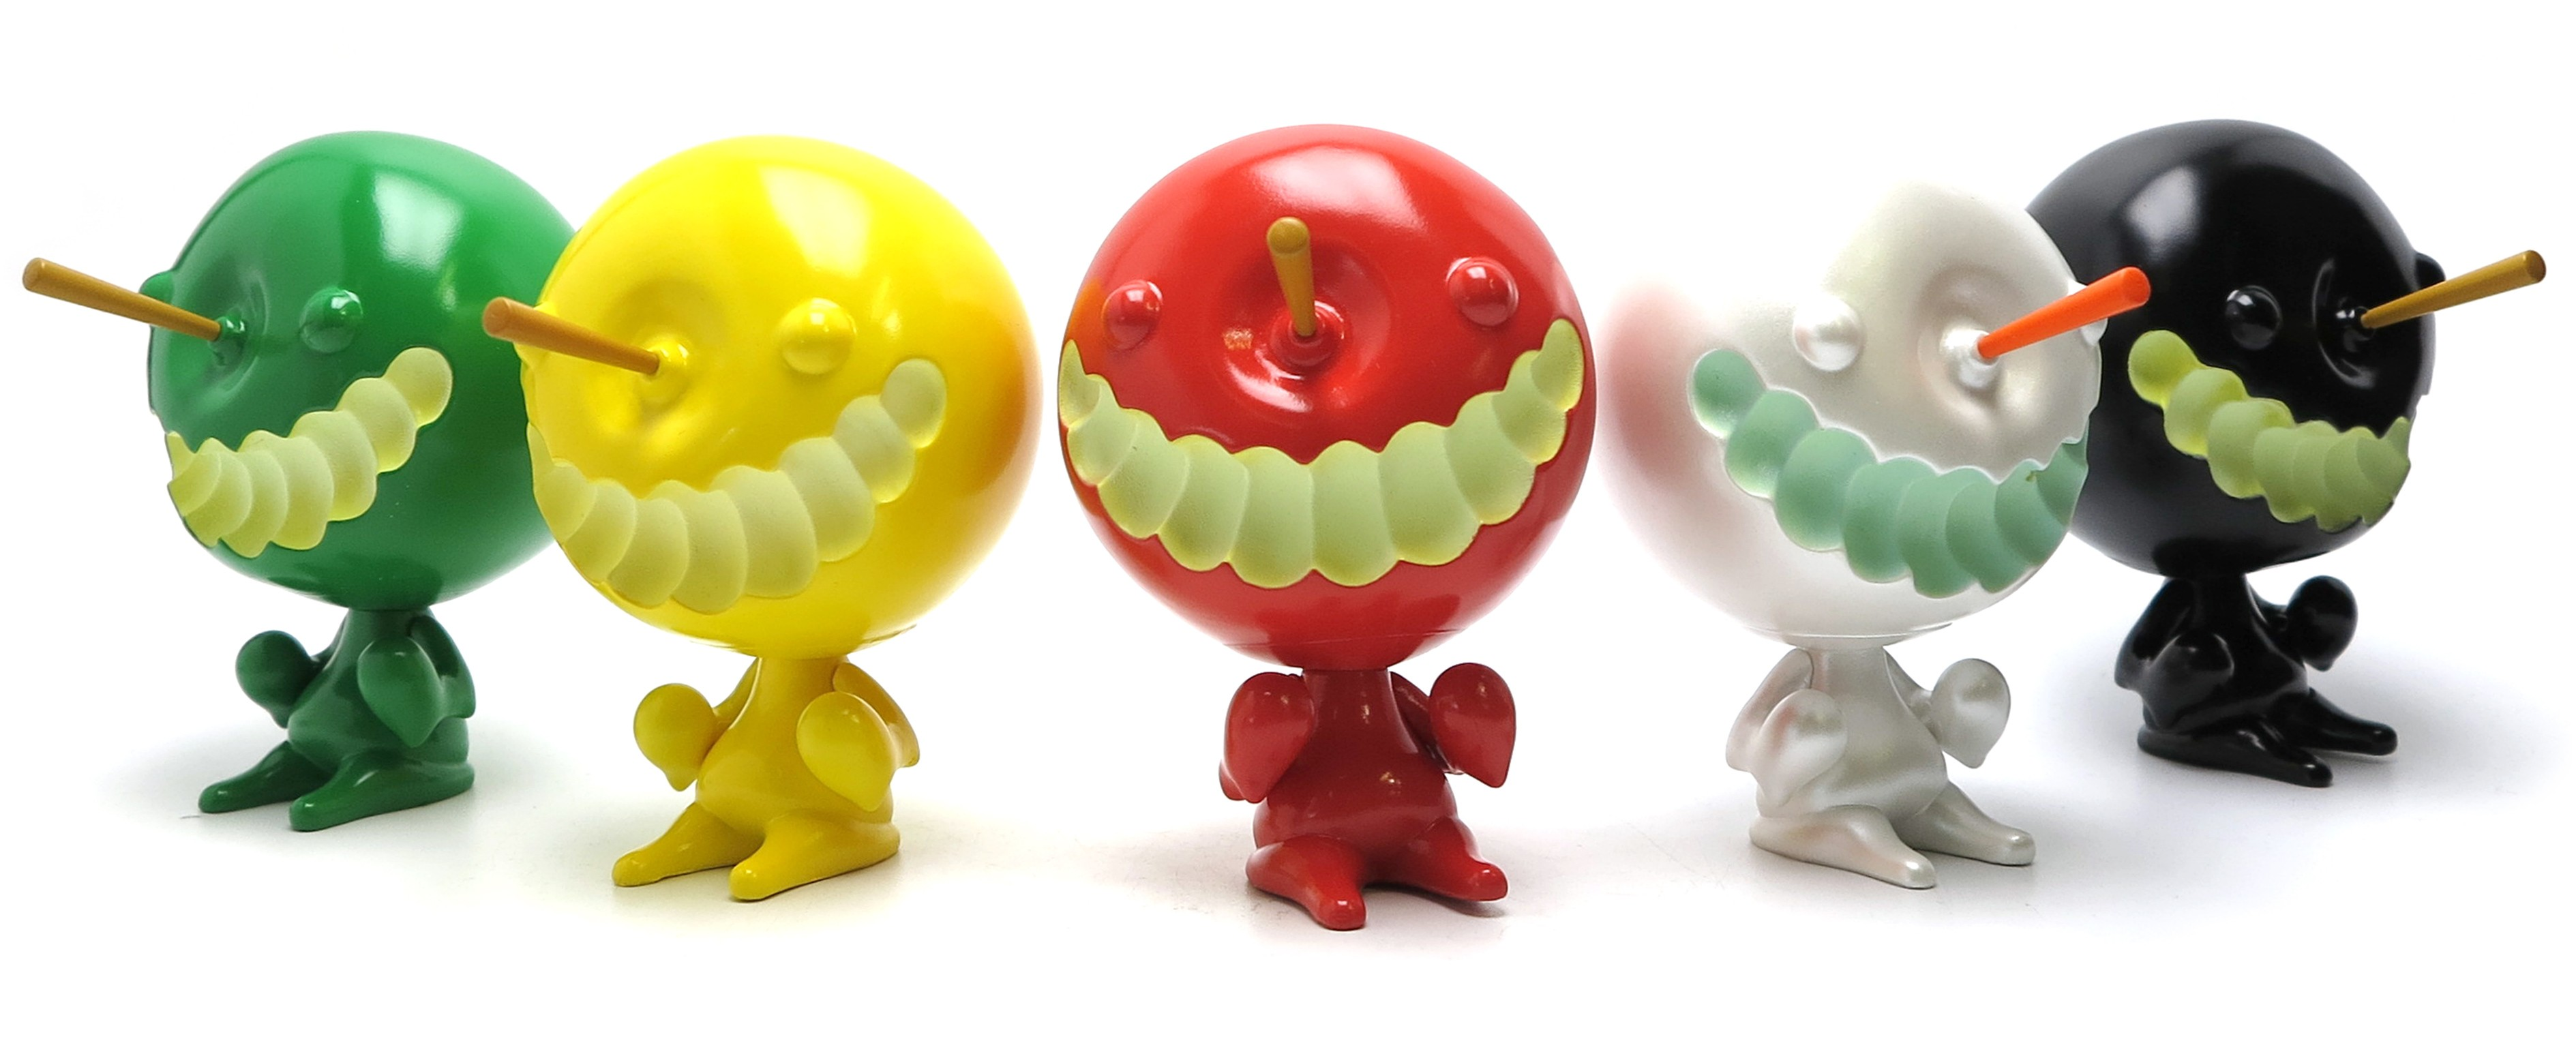 Art Toy Toxic Candies (Pomme d'Amour)